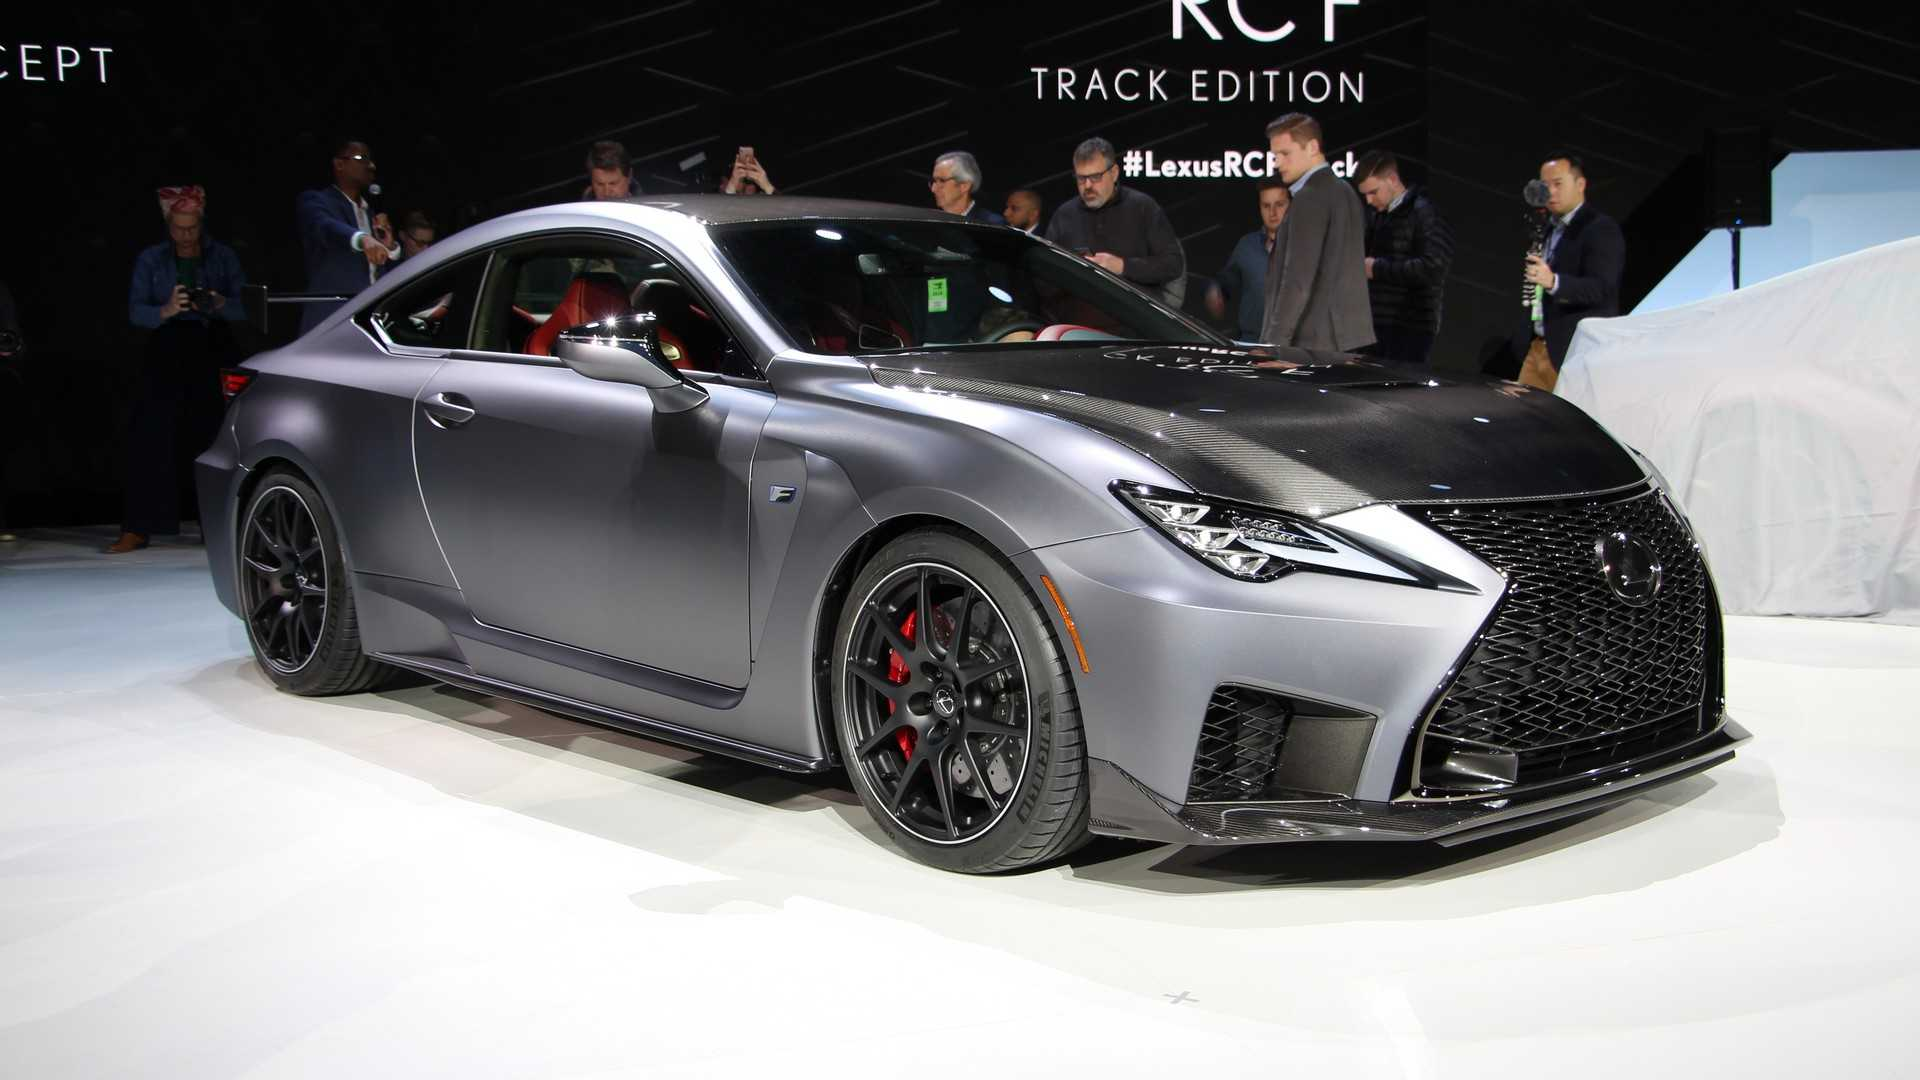 31 All New 2020 Lexus Rc F Track Edition Price Redesign for 2020 Lexus Rc F Track Edition Price